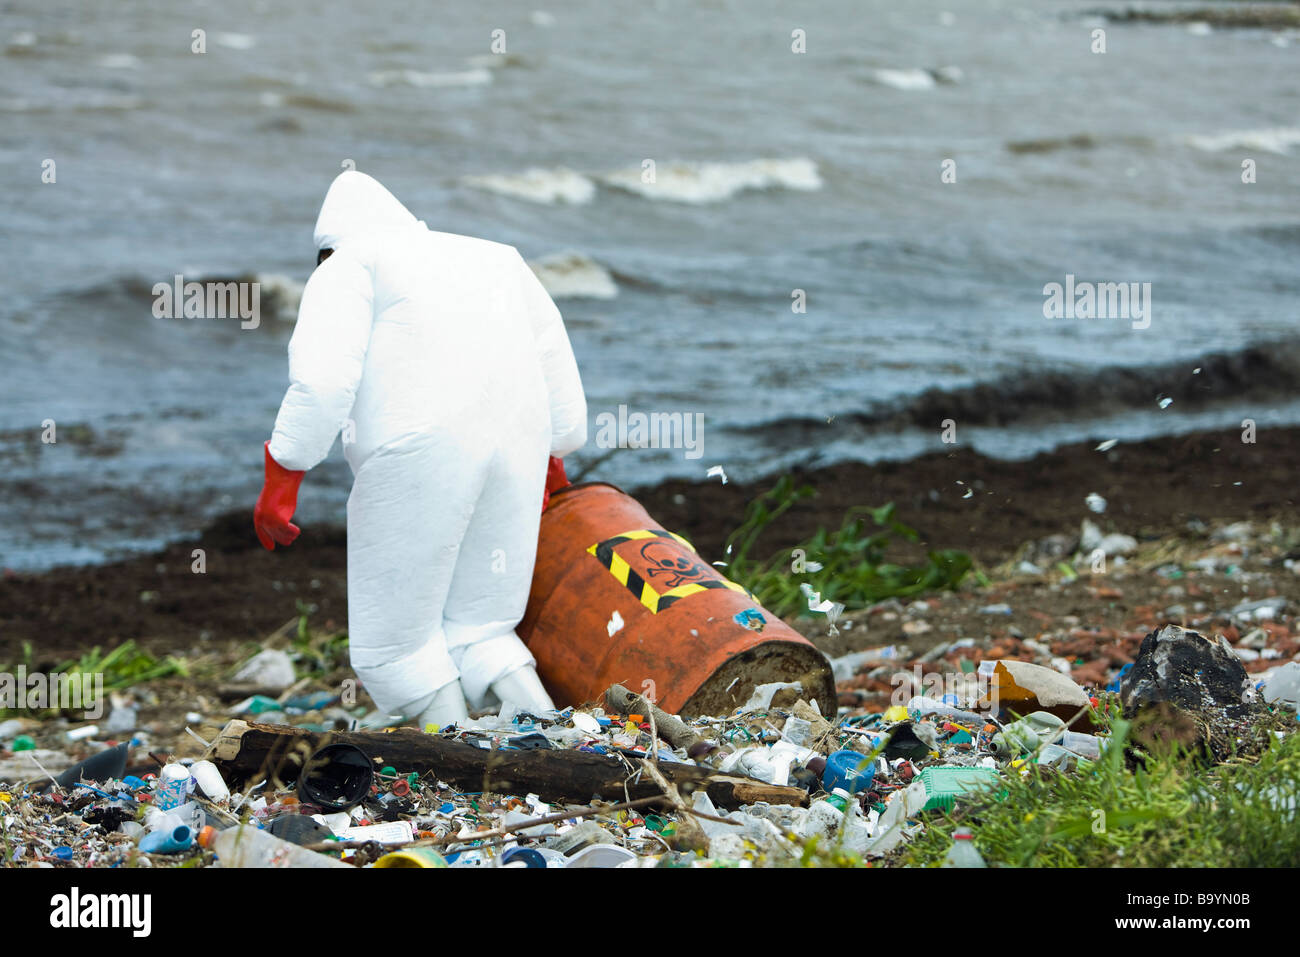 Person in protective suit carrying barrel of hazardous waste on polluted shore Stock Photo